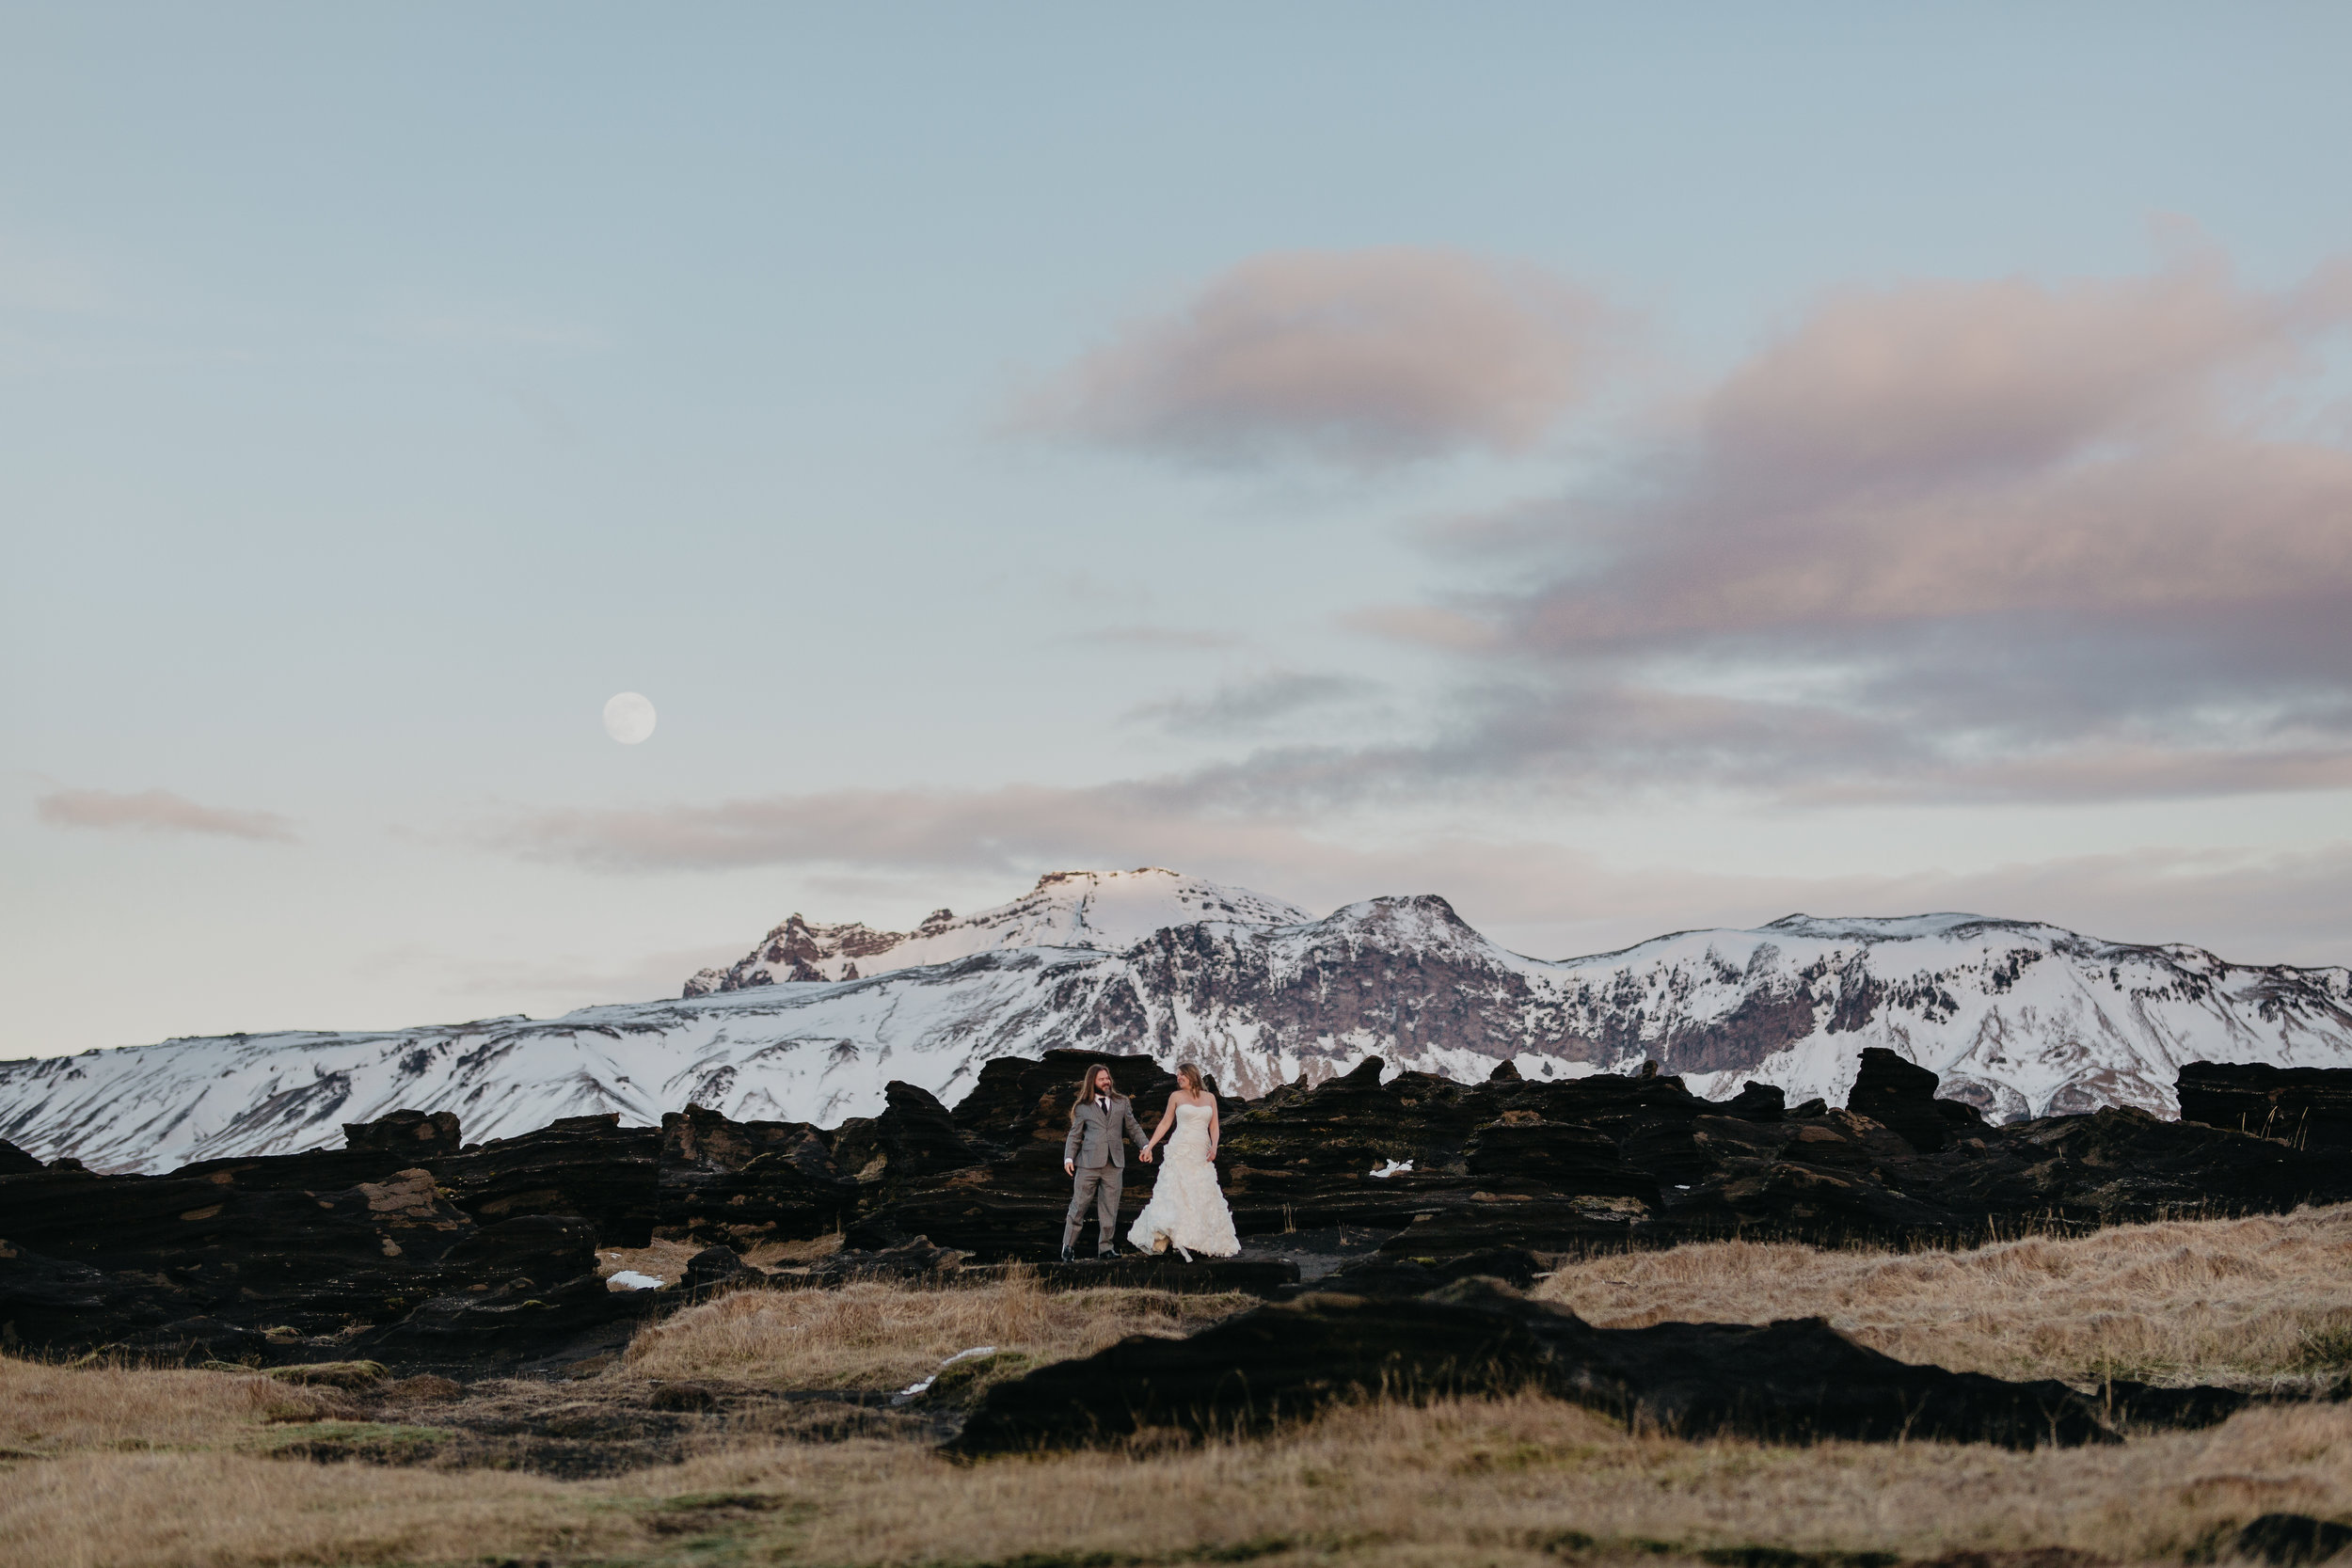 nicole-daacke-photography-iceland-winter-sunset-adventure-elopement-skogafoss-waterfall-black-sand-beach-dyrholaey-vik-iceland-intimate-wedding-black-church-elopement-photographer-26.jpg